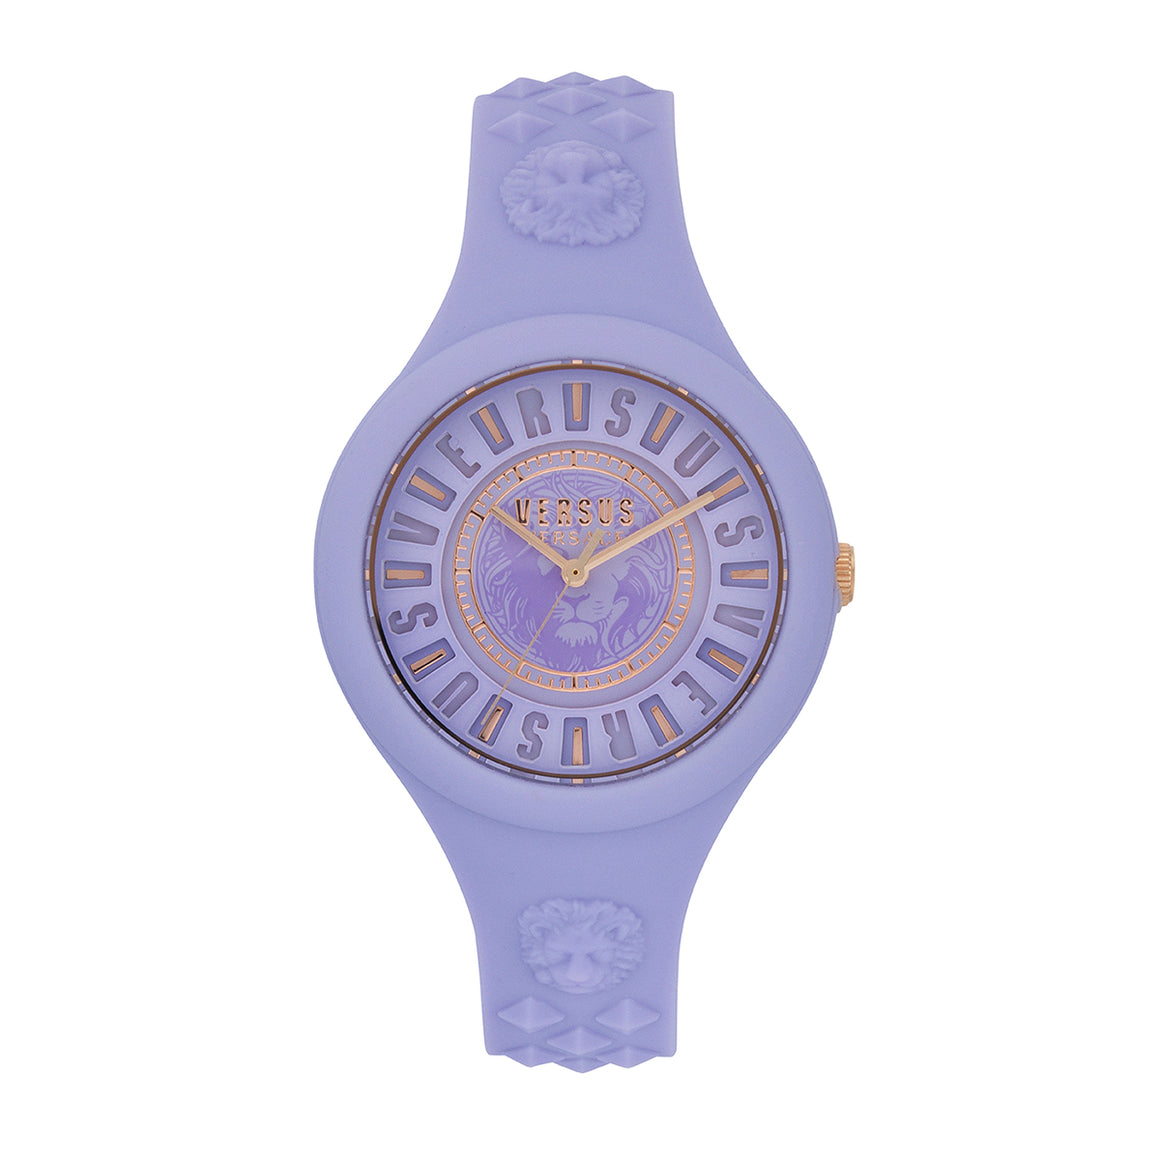 39mm Fire Island Lumiere Violet Dial Violet Silicone Strap